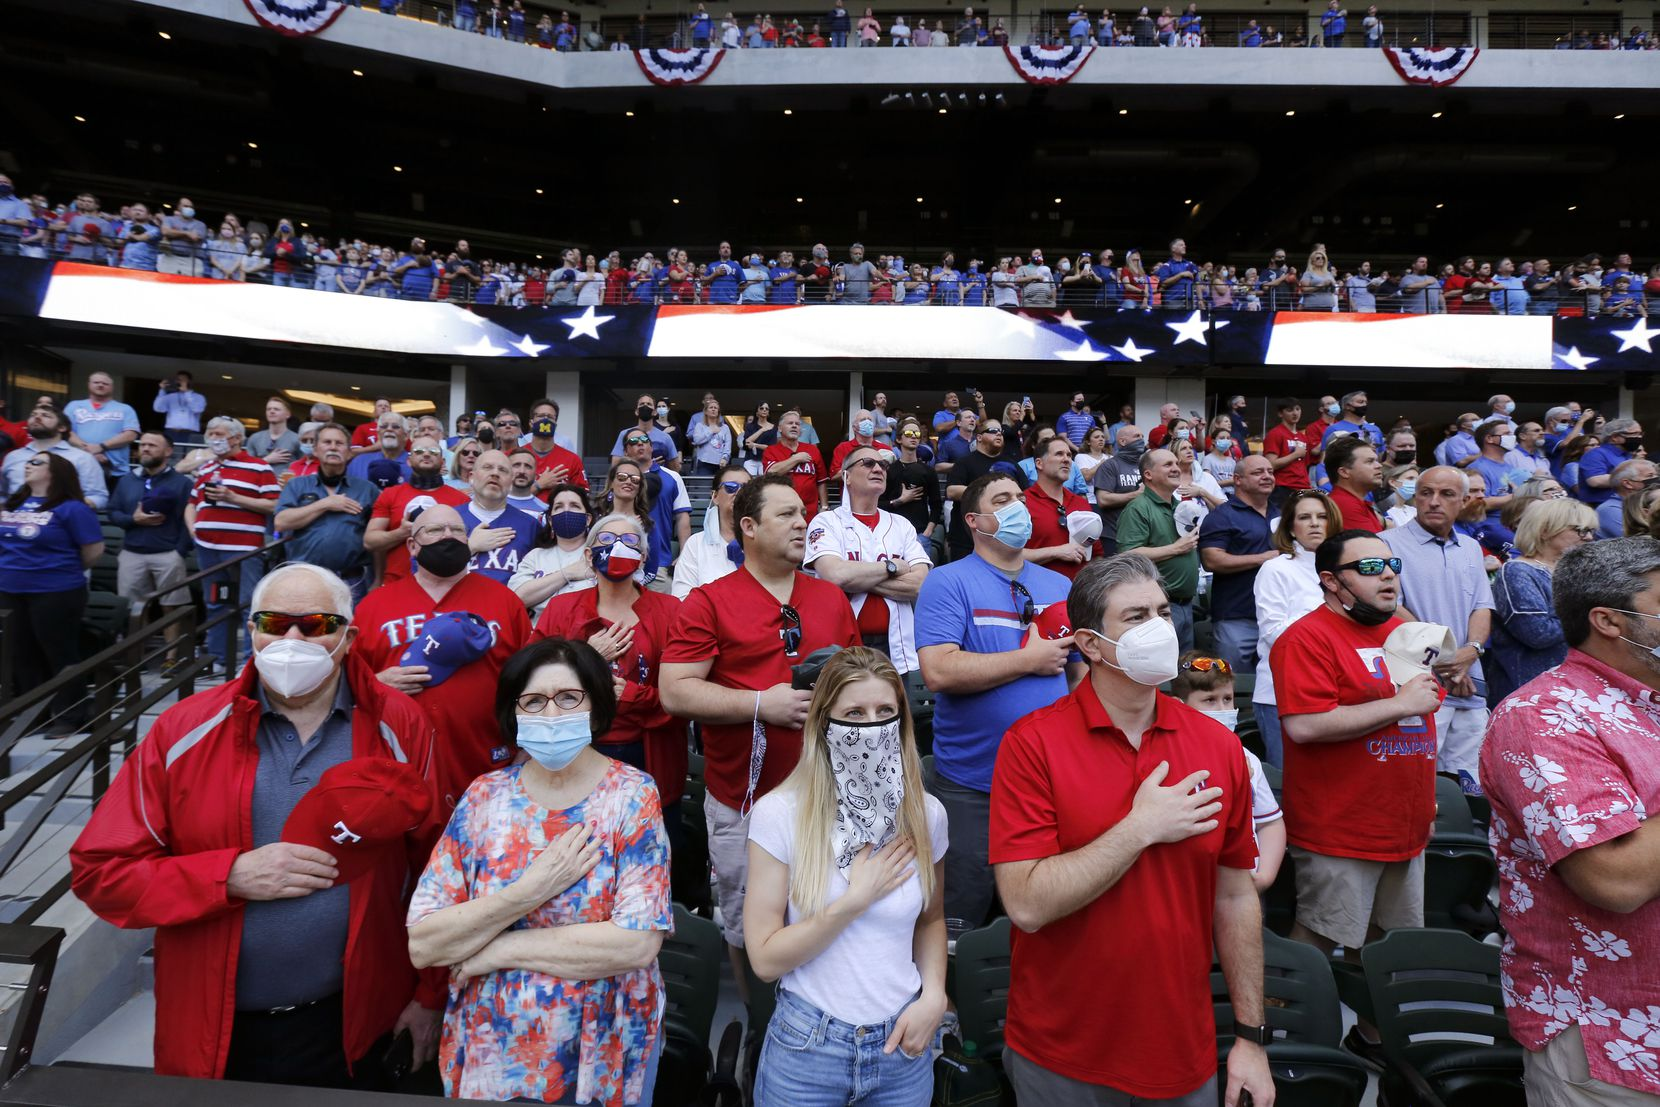 Texas Rangers fans (from left) Fred Aurbach, his girlfriend Leslie Lehman, his daughter-in-law Melissa Aurbach and son Wilson Aurbach and the rest of the nearly sold-out Opening Day crowd stand for the National anthem at Globe Life Field in Arlington, Monday, April 5, 2021. The Rangers were facing the Toronto Blue Jays in the home opener. (Tom Fox/The Dallas Morning News)